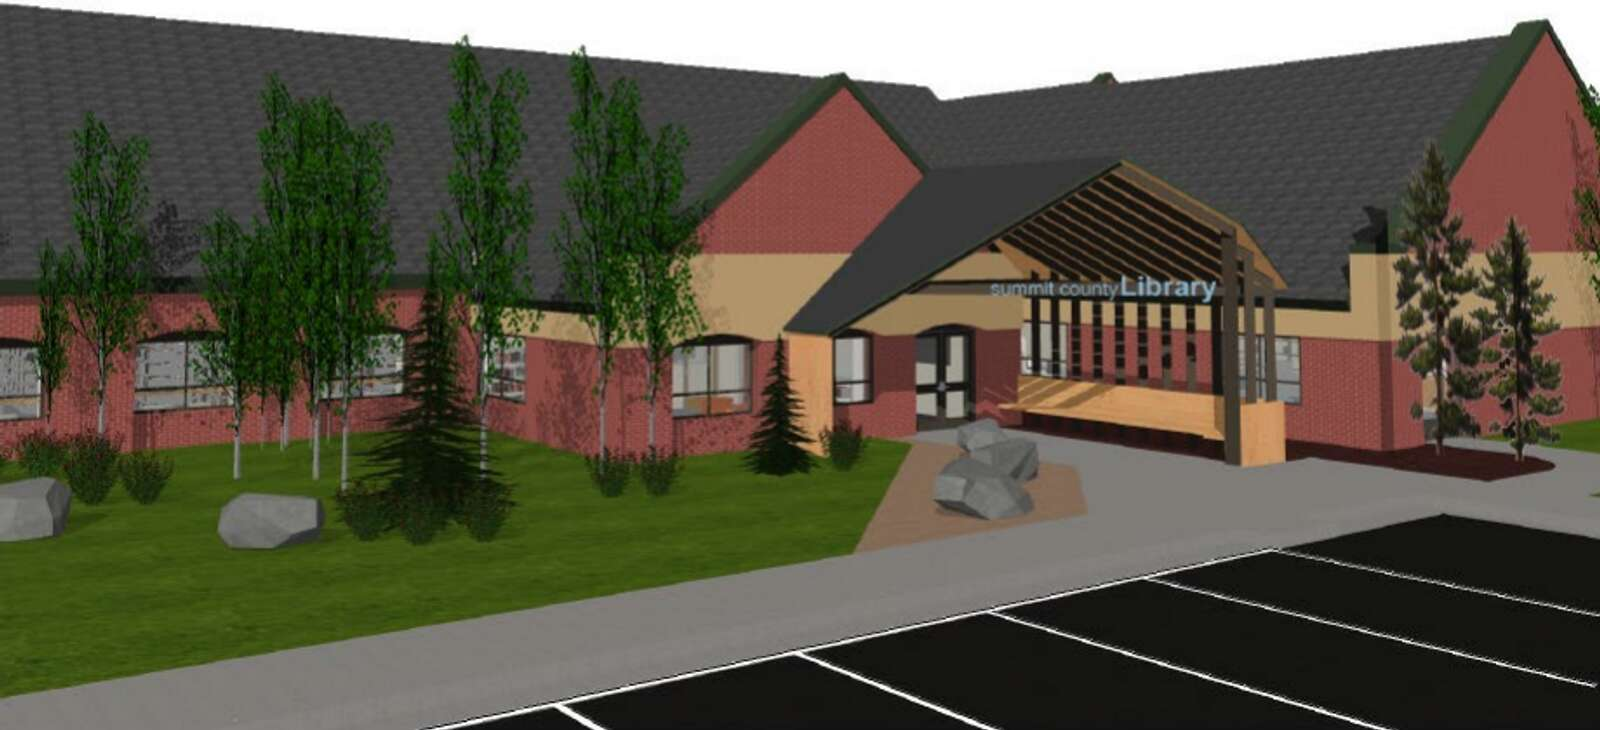 A rendering of the proposed new entrance to the Frisco Main Library u2014 part of the Summit County Library building project u2014 is shown.   Rendering from Silverthorne Town Council packet